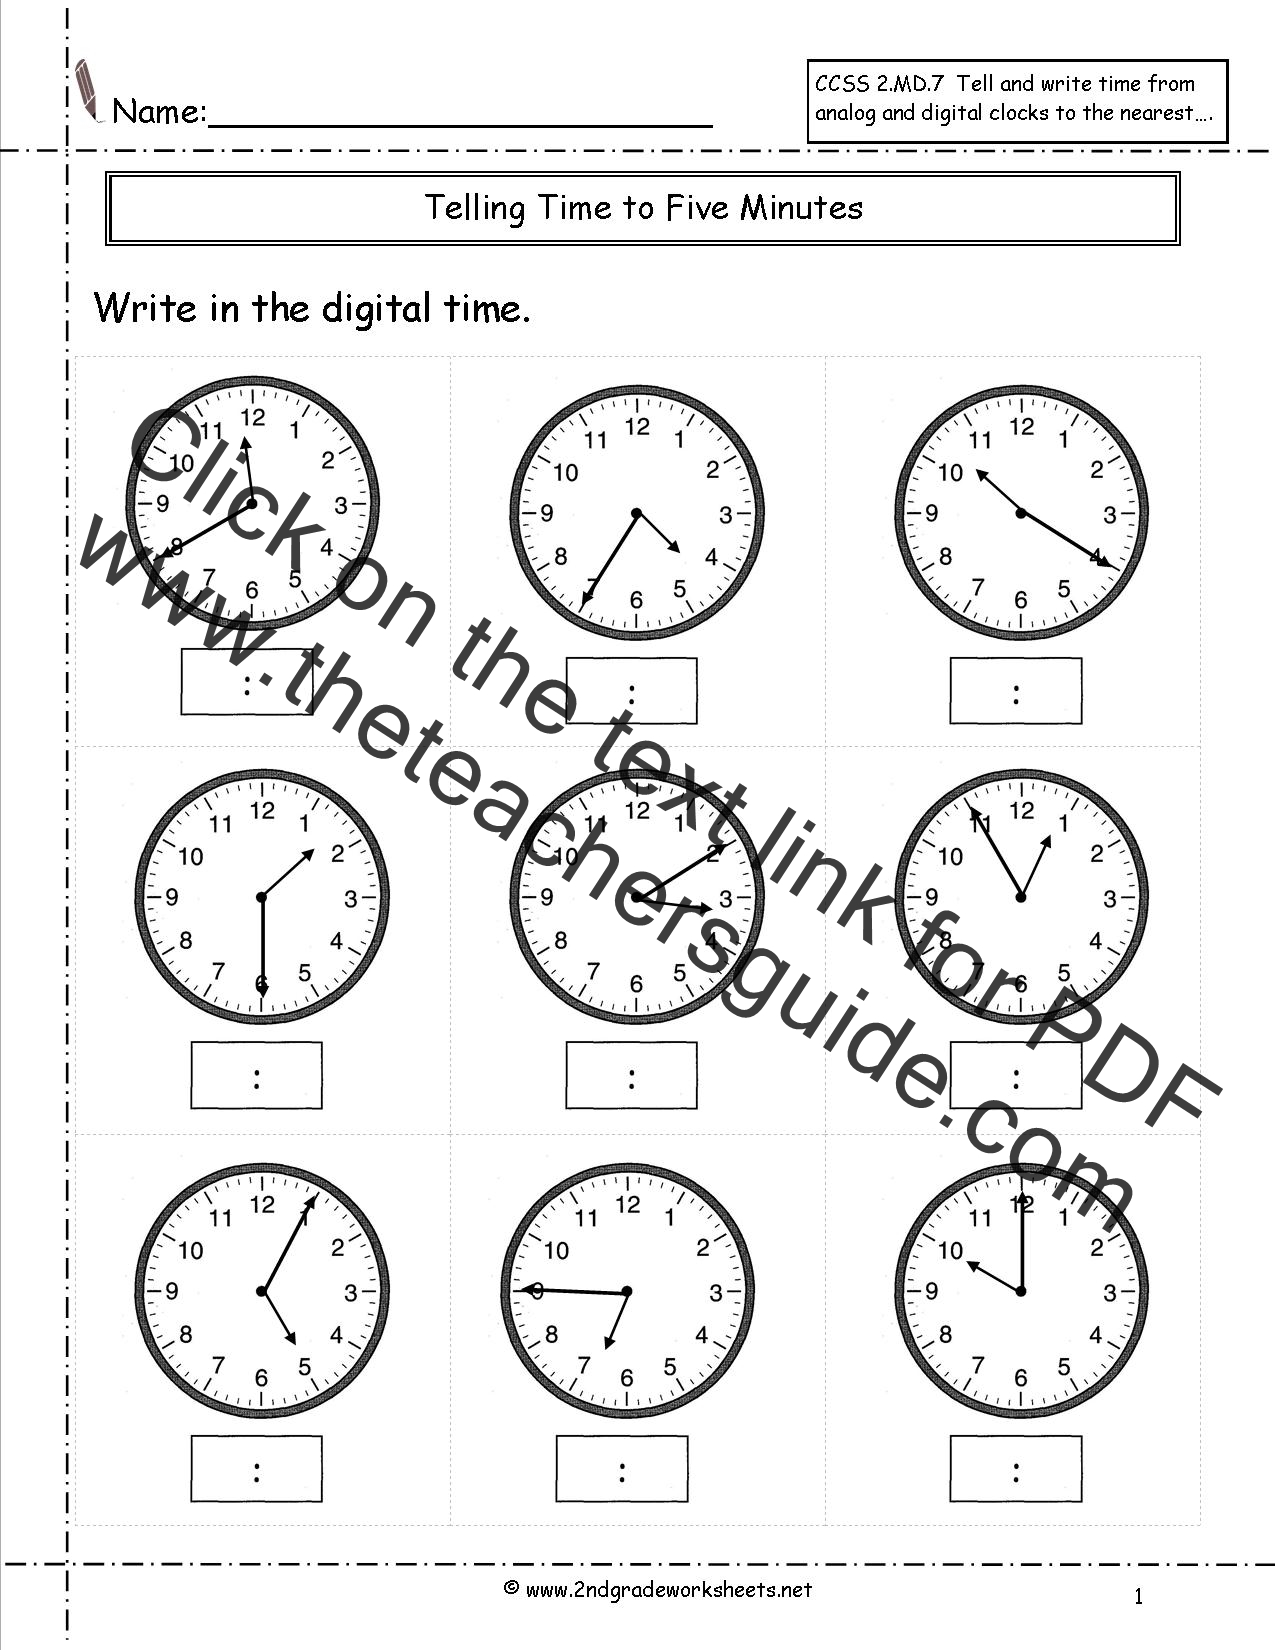 Worksheets Worksheets For Telling Time telling and writing time worksheets to nearest five minutes worksheet